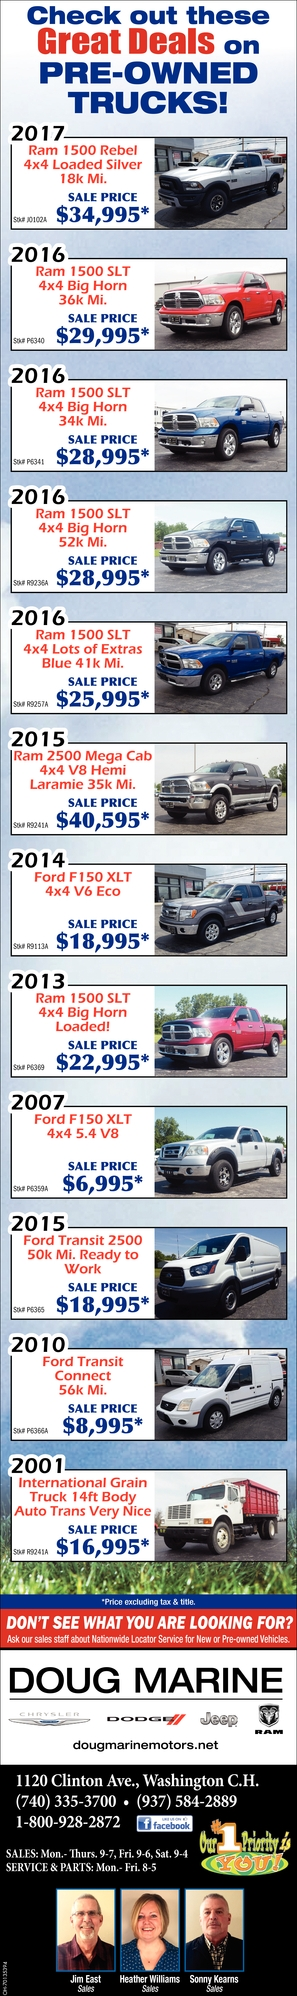 Check out these Great Deals on Pre-Owned Trucks!